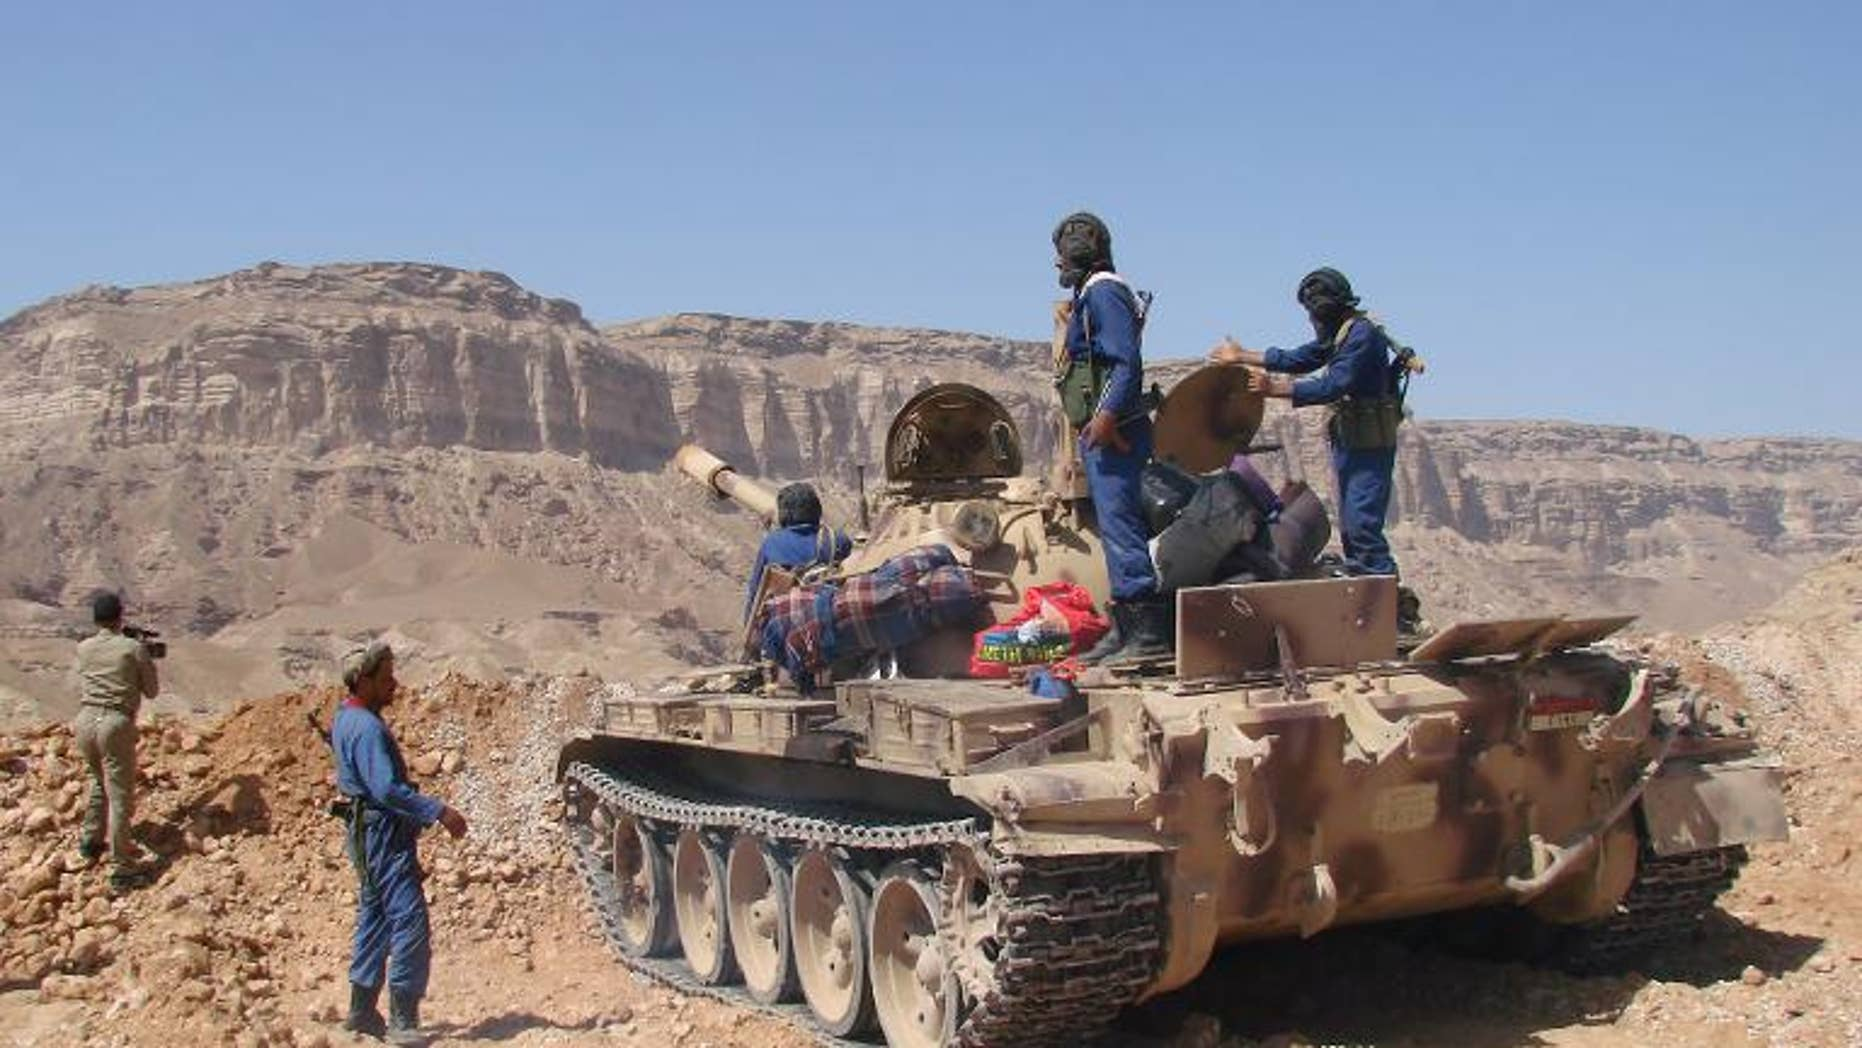 Yemeni army troops take position on September 27, 2010 on the hills overlooking the southern town of Huta